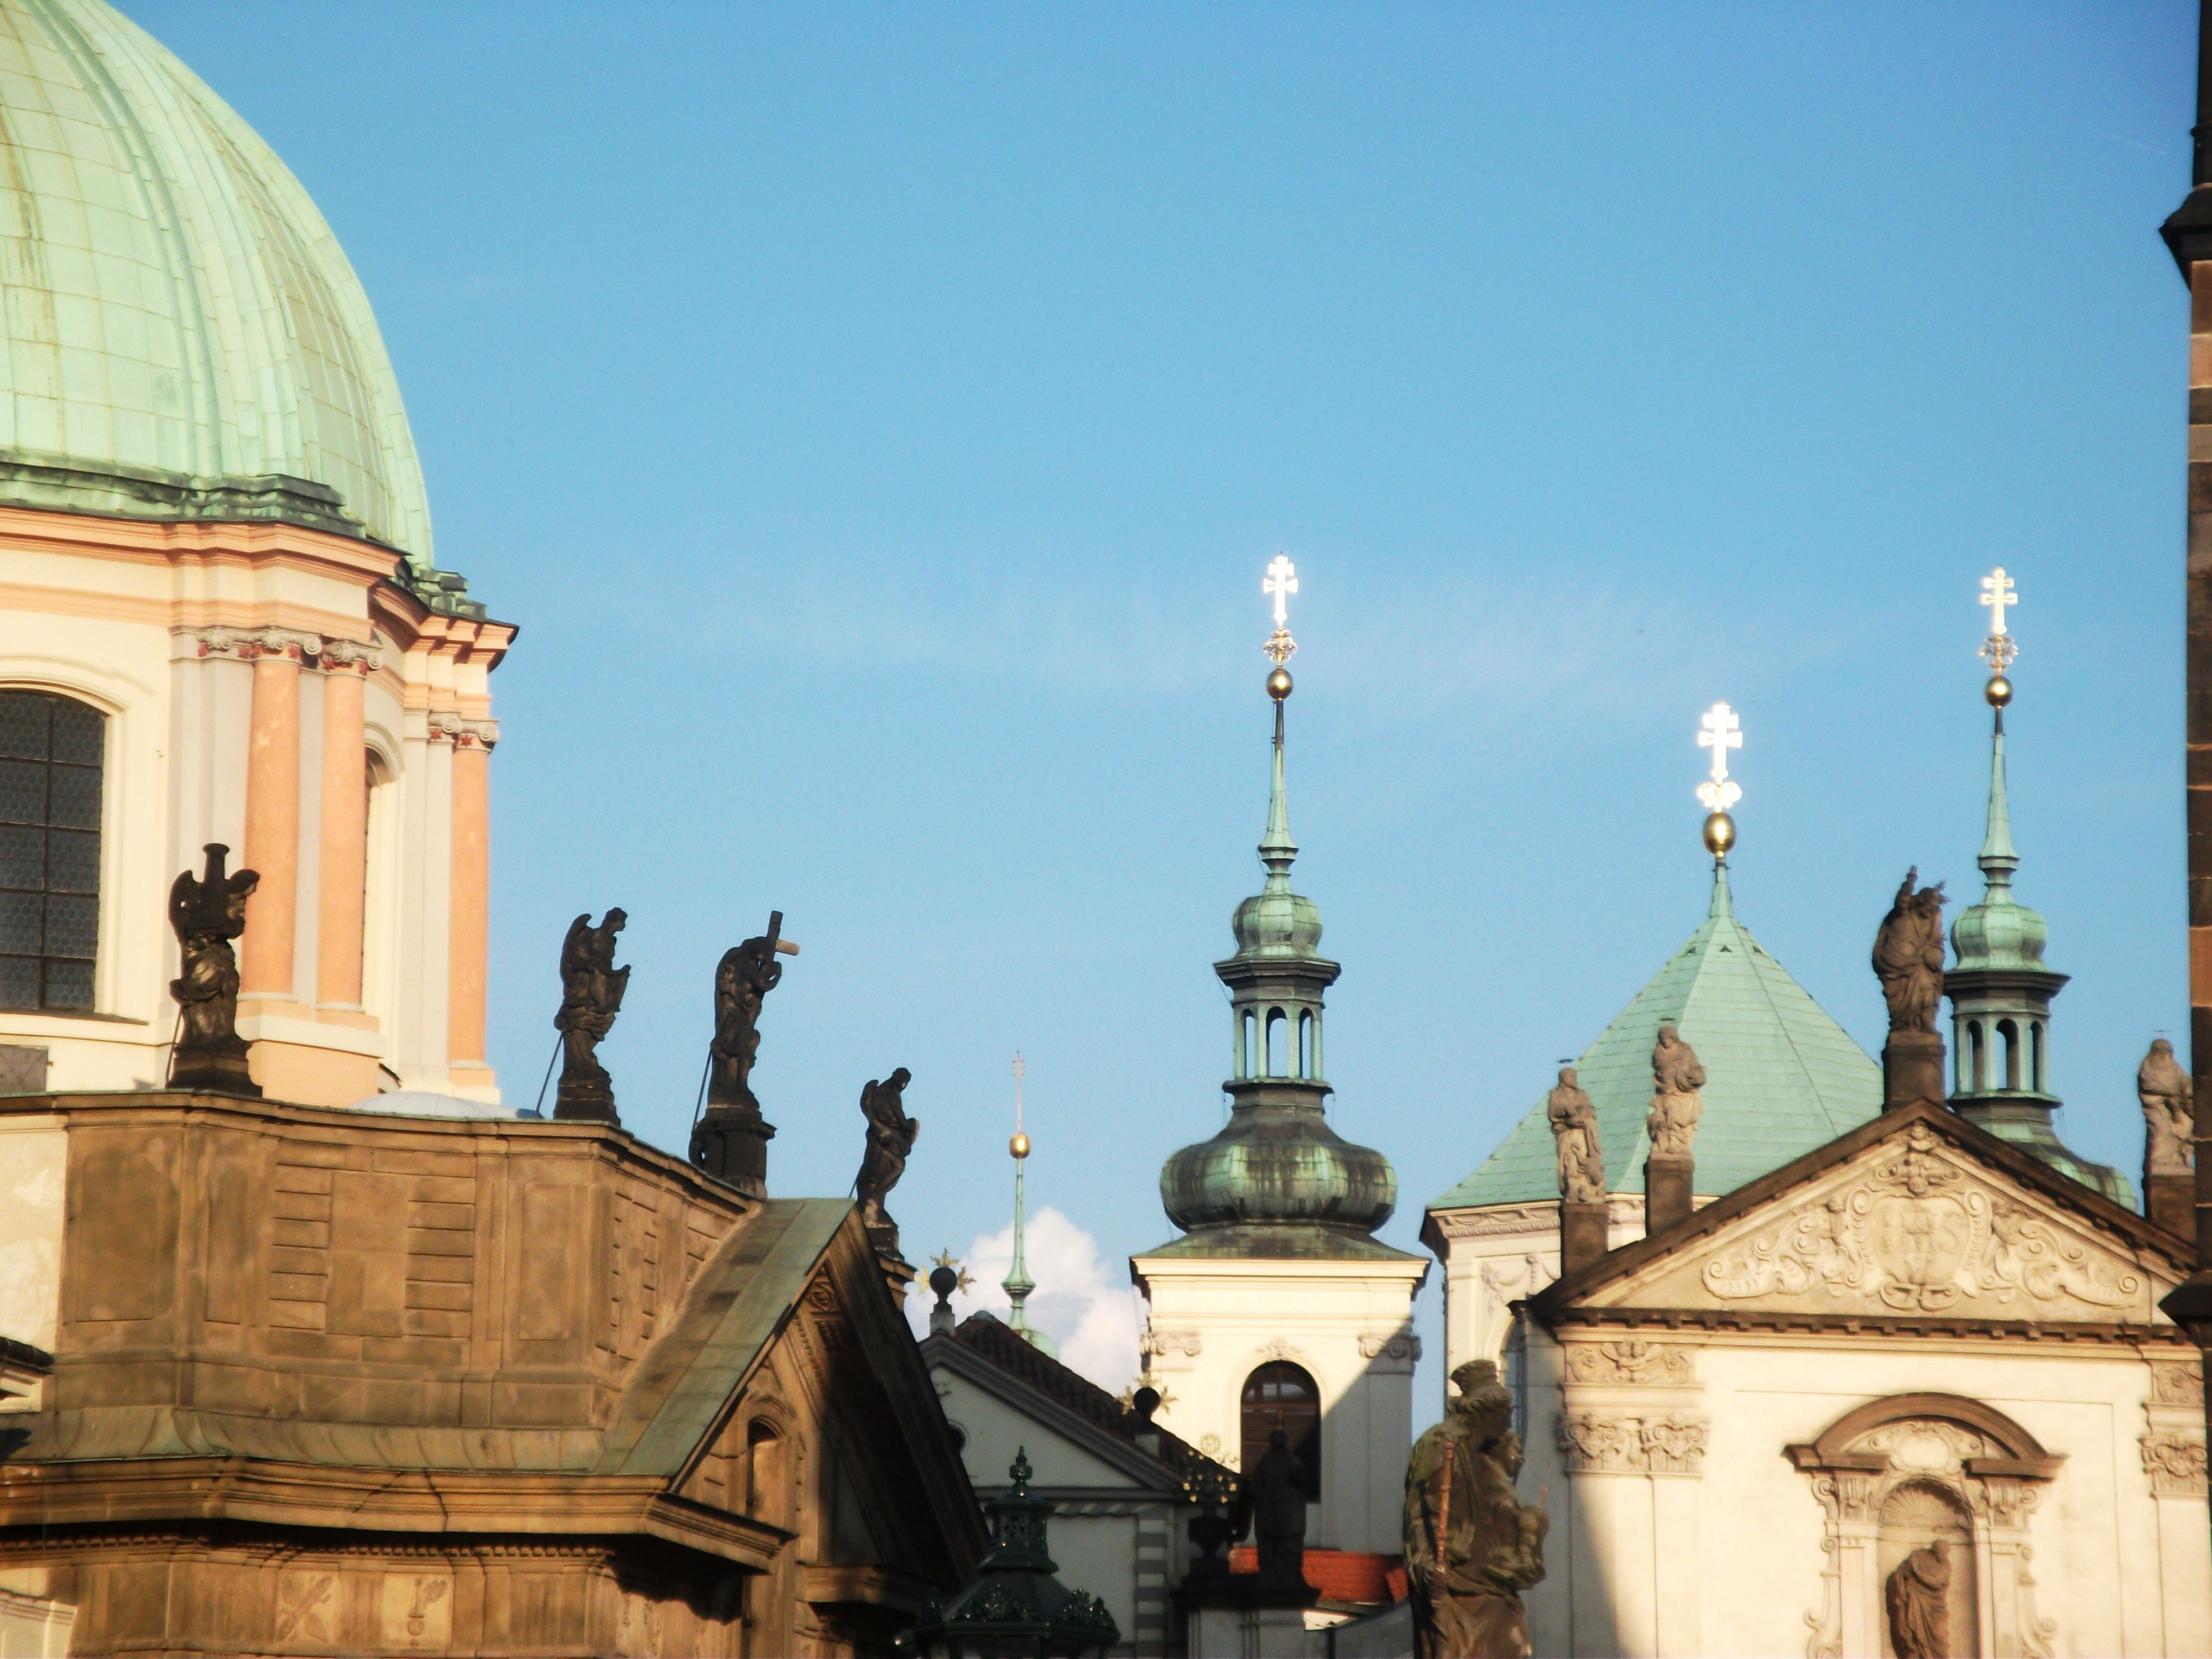 towers of Old town